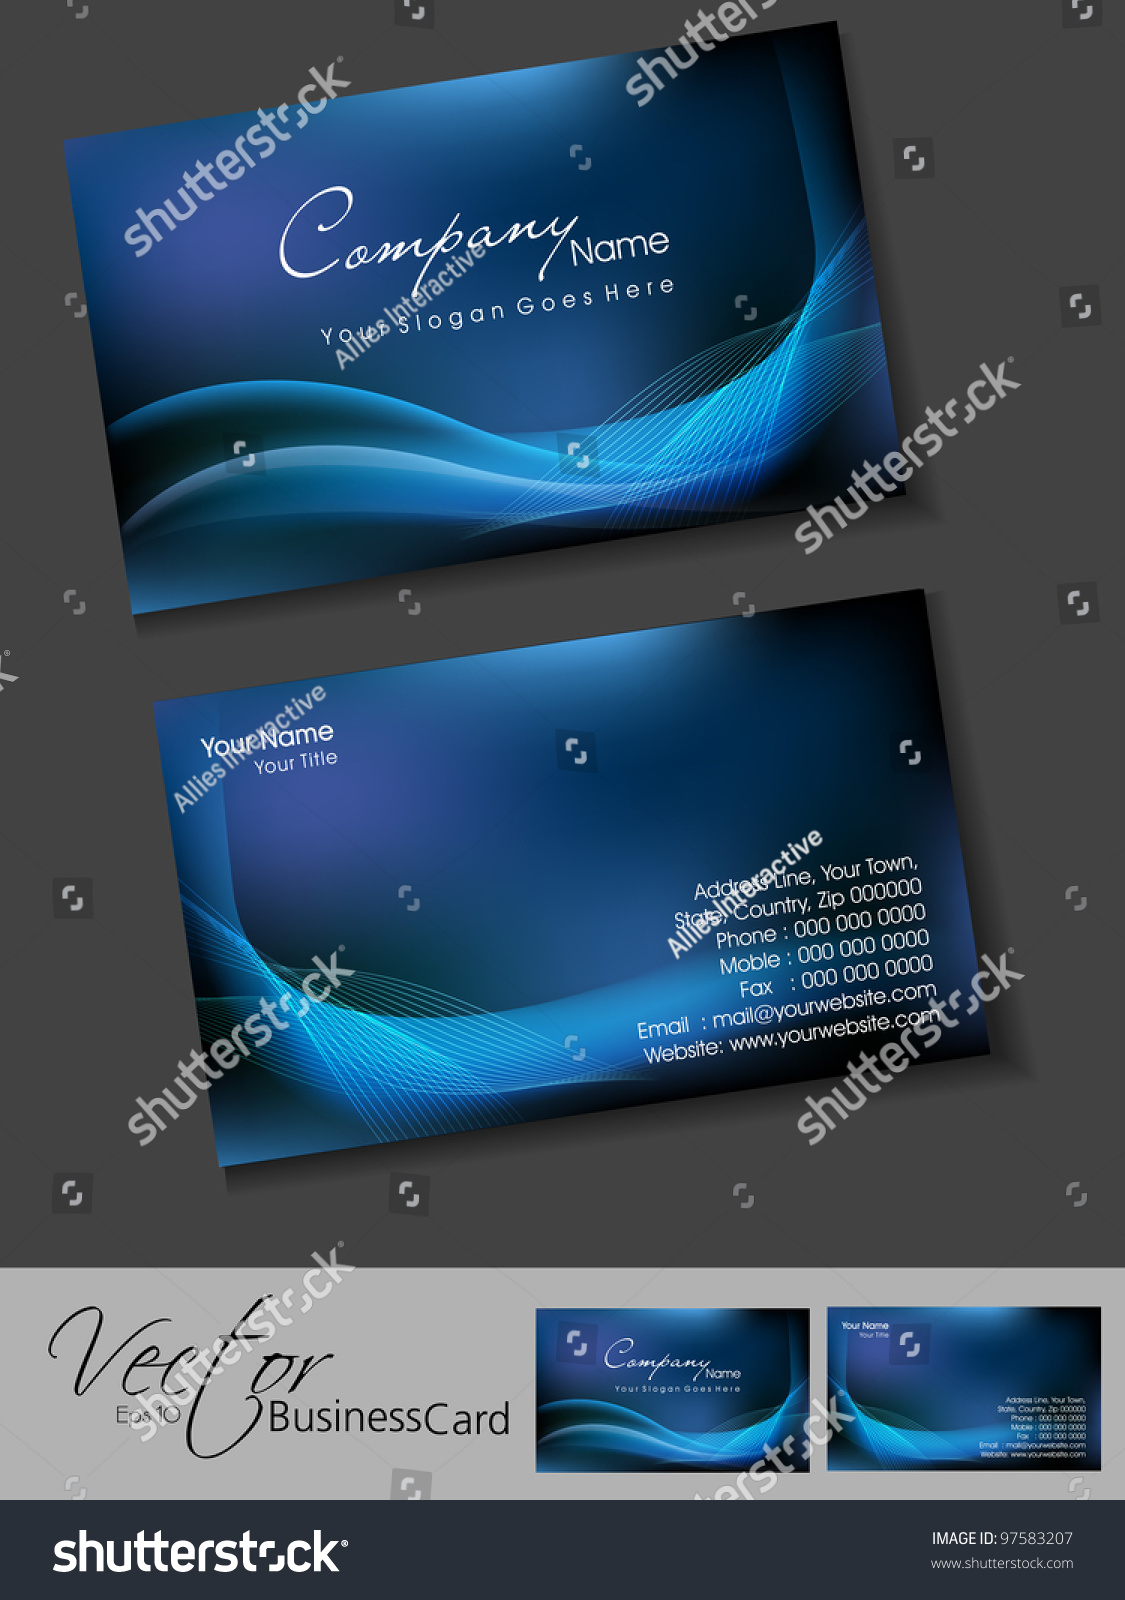 Professional Business Cards Template Visiting Card Vector – Visiting Cards